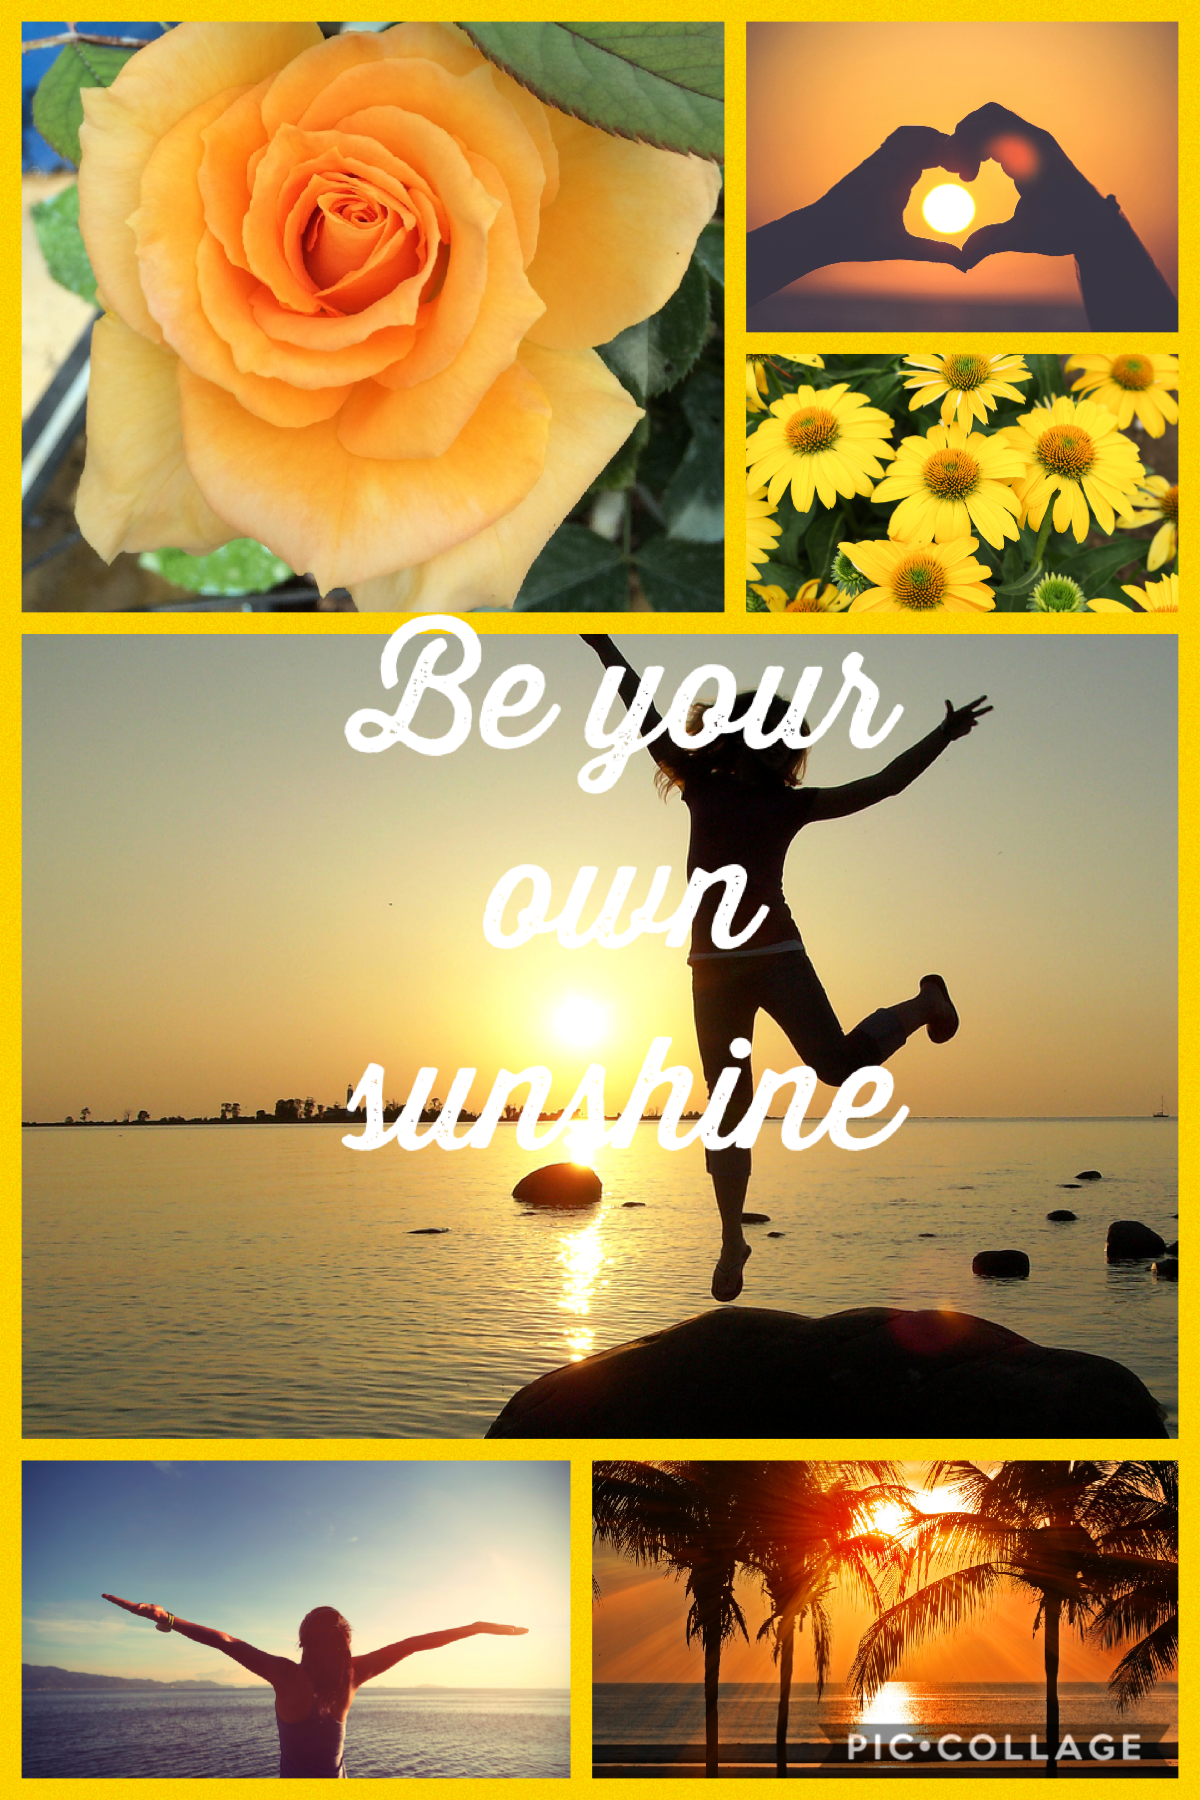 Be your own sunshine!! ☀️